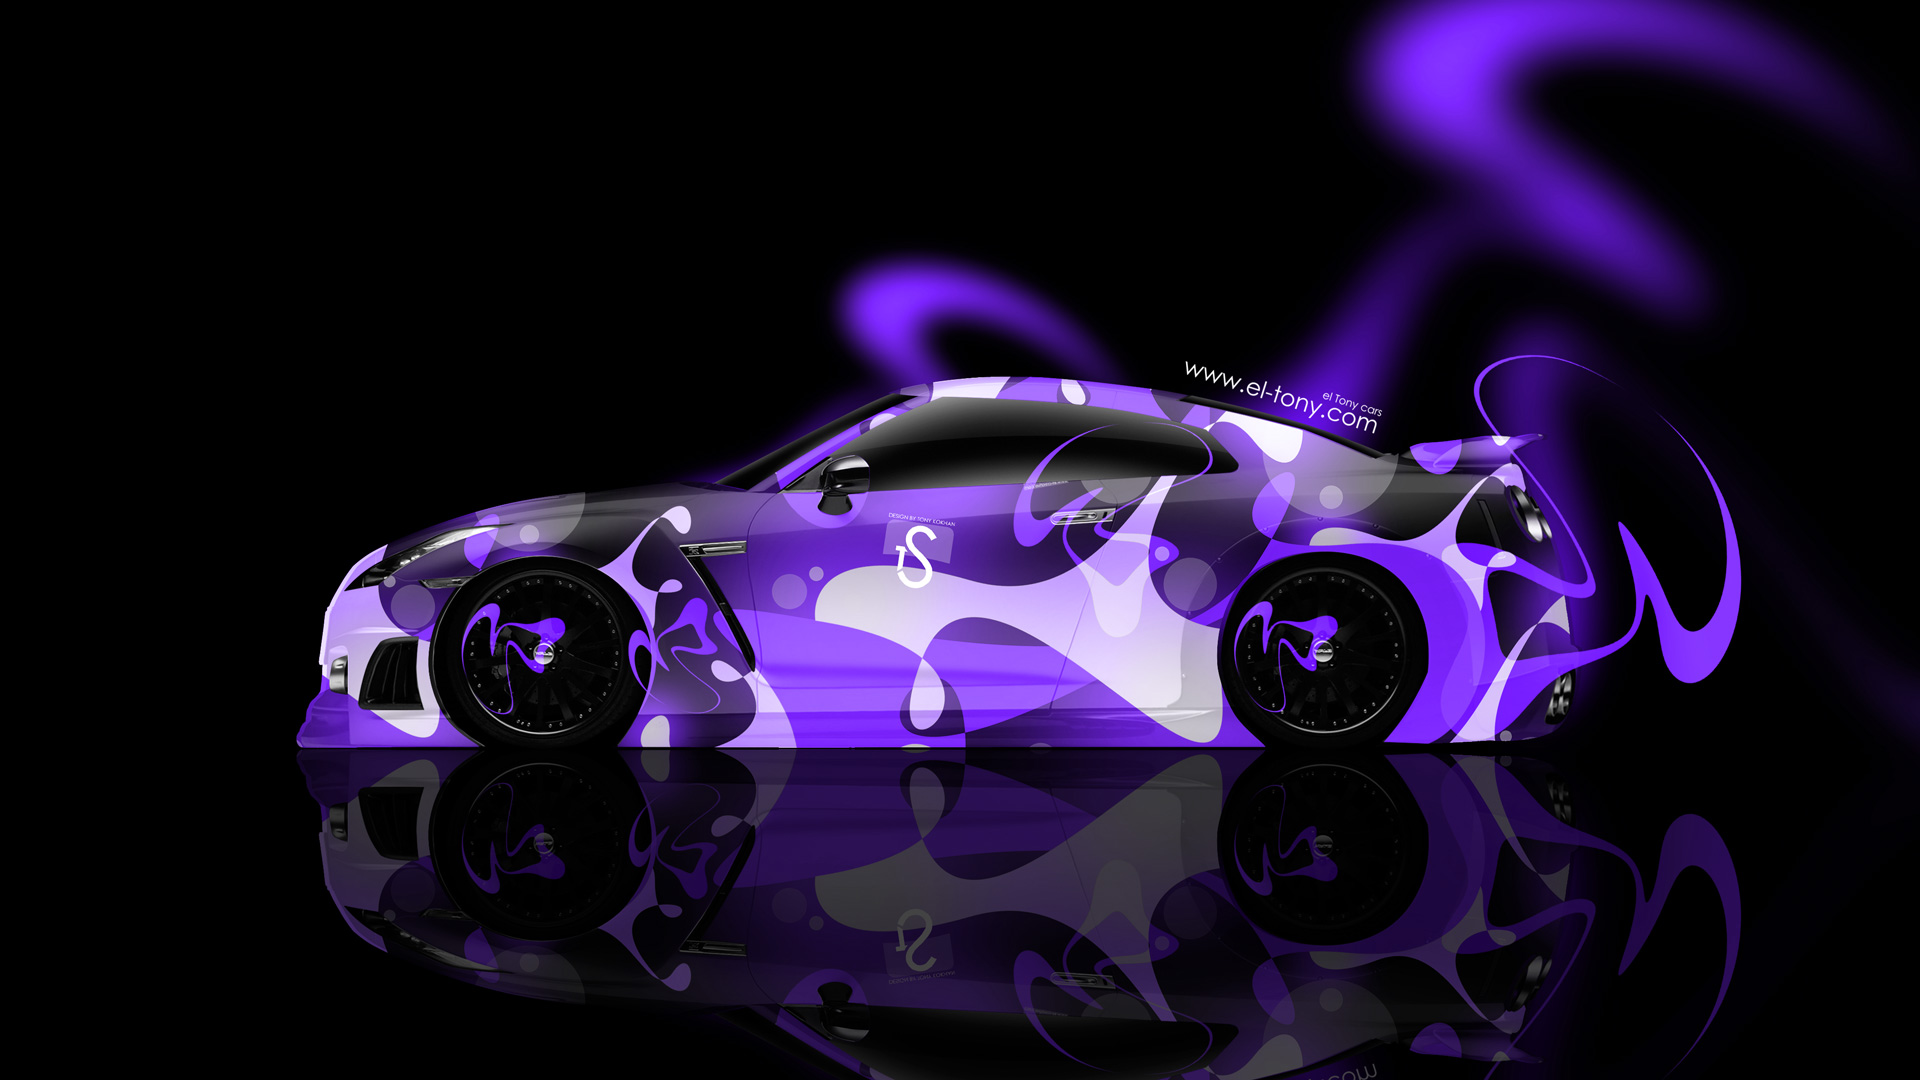 ... Nissan GTR R35 Side Abstract Car 2014 Violet